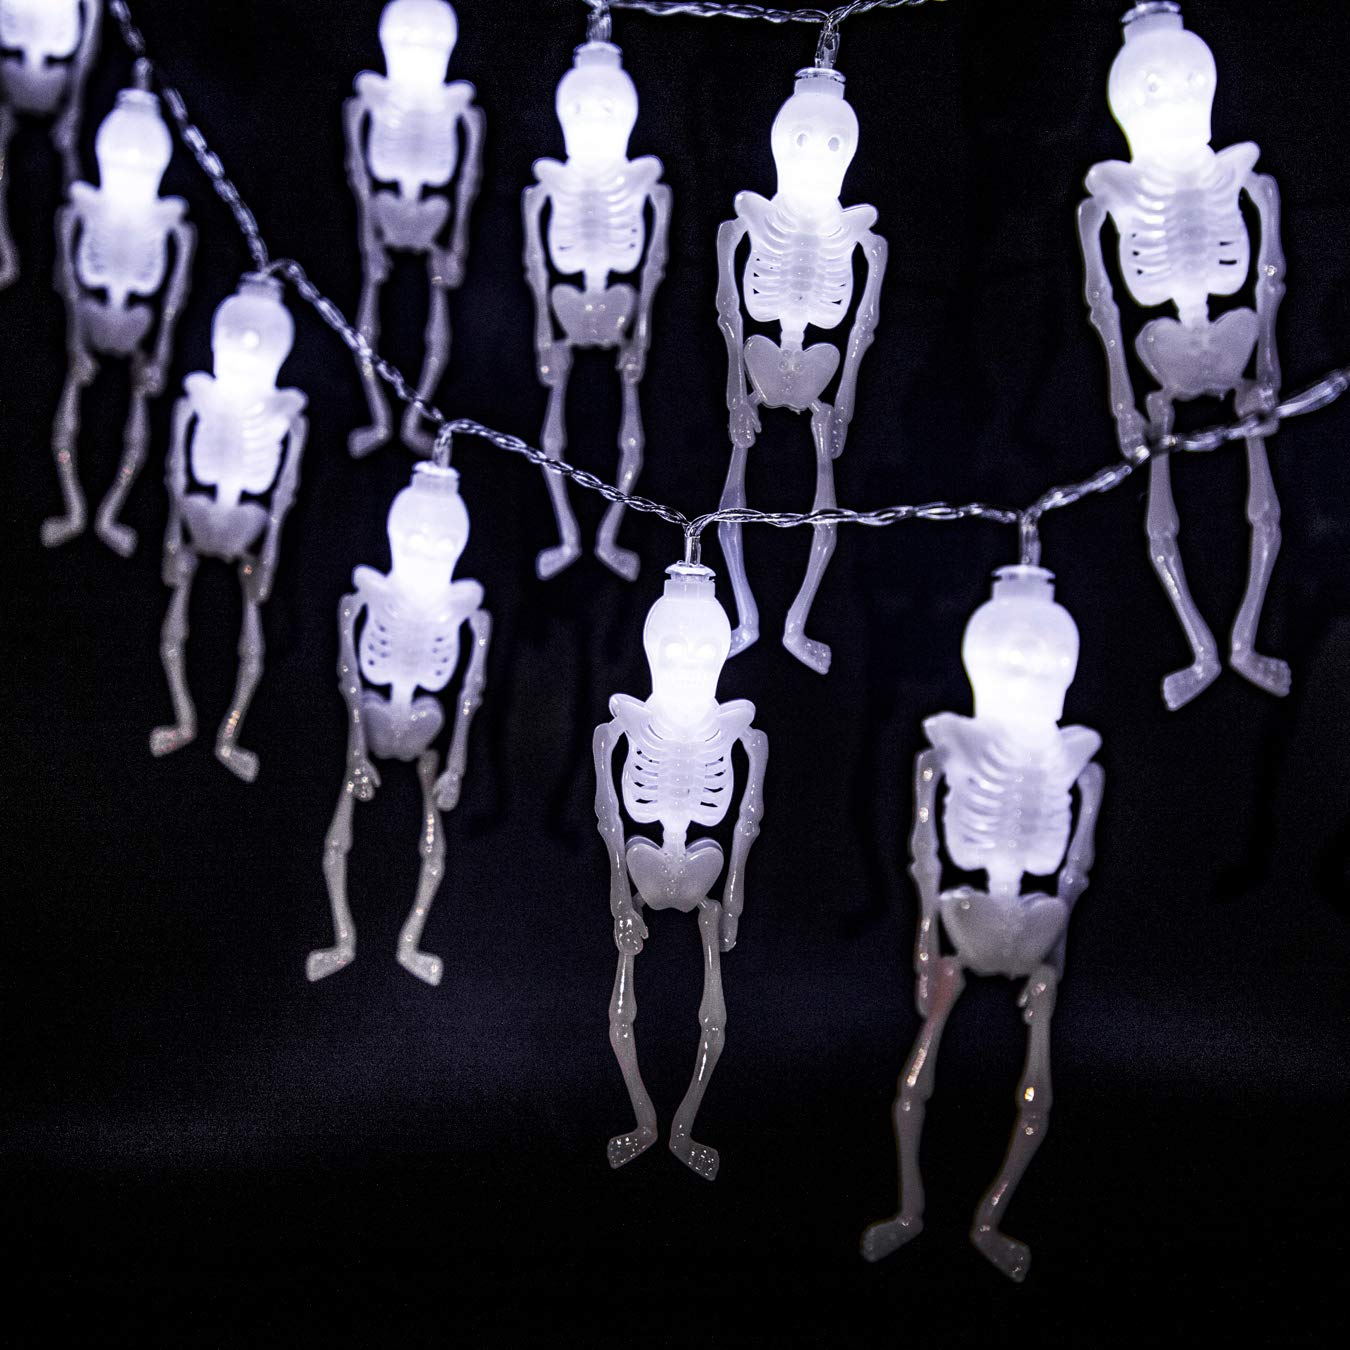 UJoowalk Halloween String Lights, 14.5 ft 30 LED White Skeleton Decoration with Battery Operated Lighting Strings for Indoor Outdoor Patio Garden Party Decor by UJoowalk (Image #2)